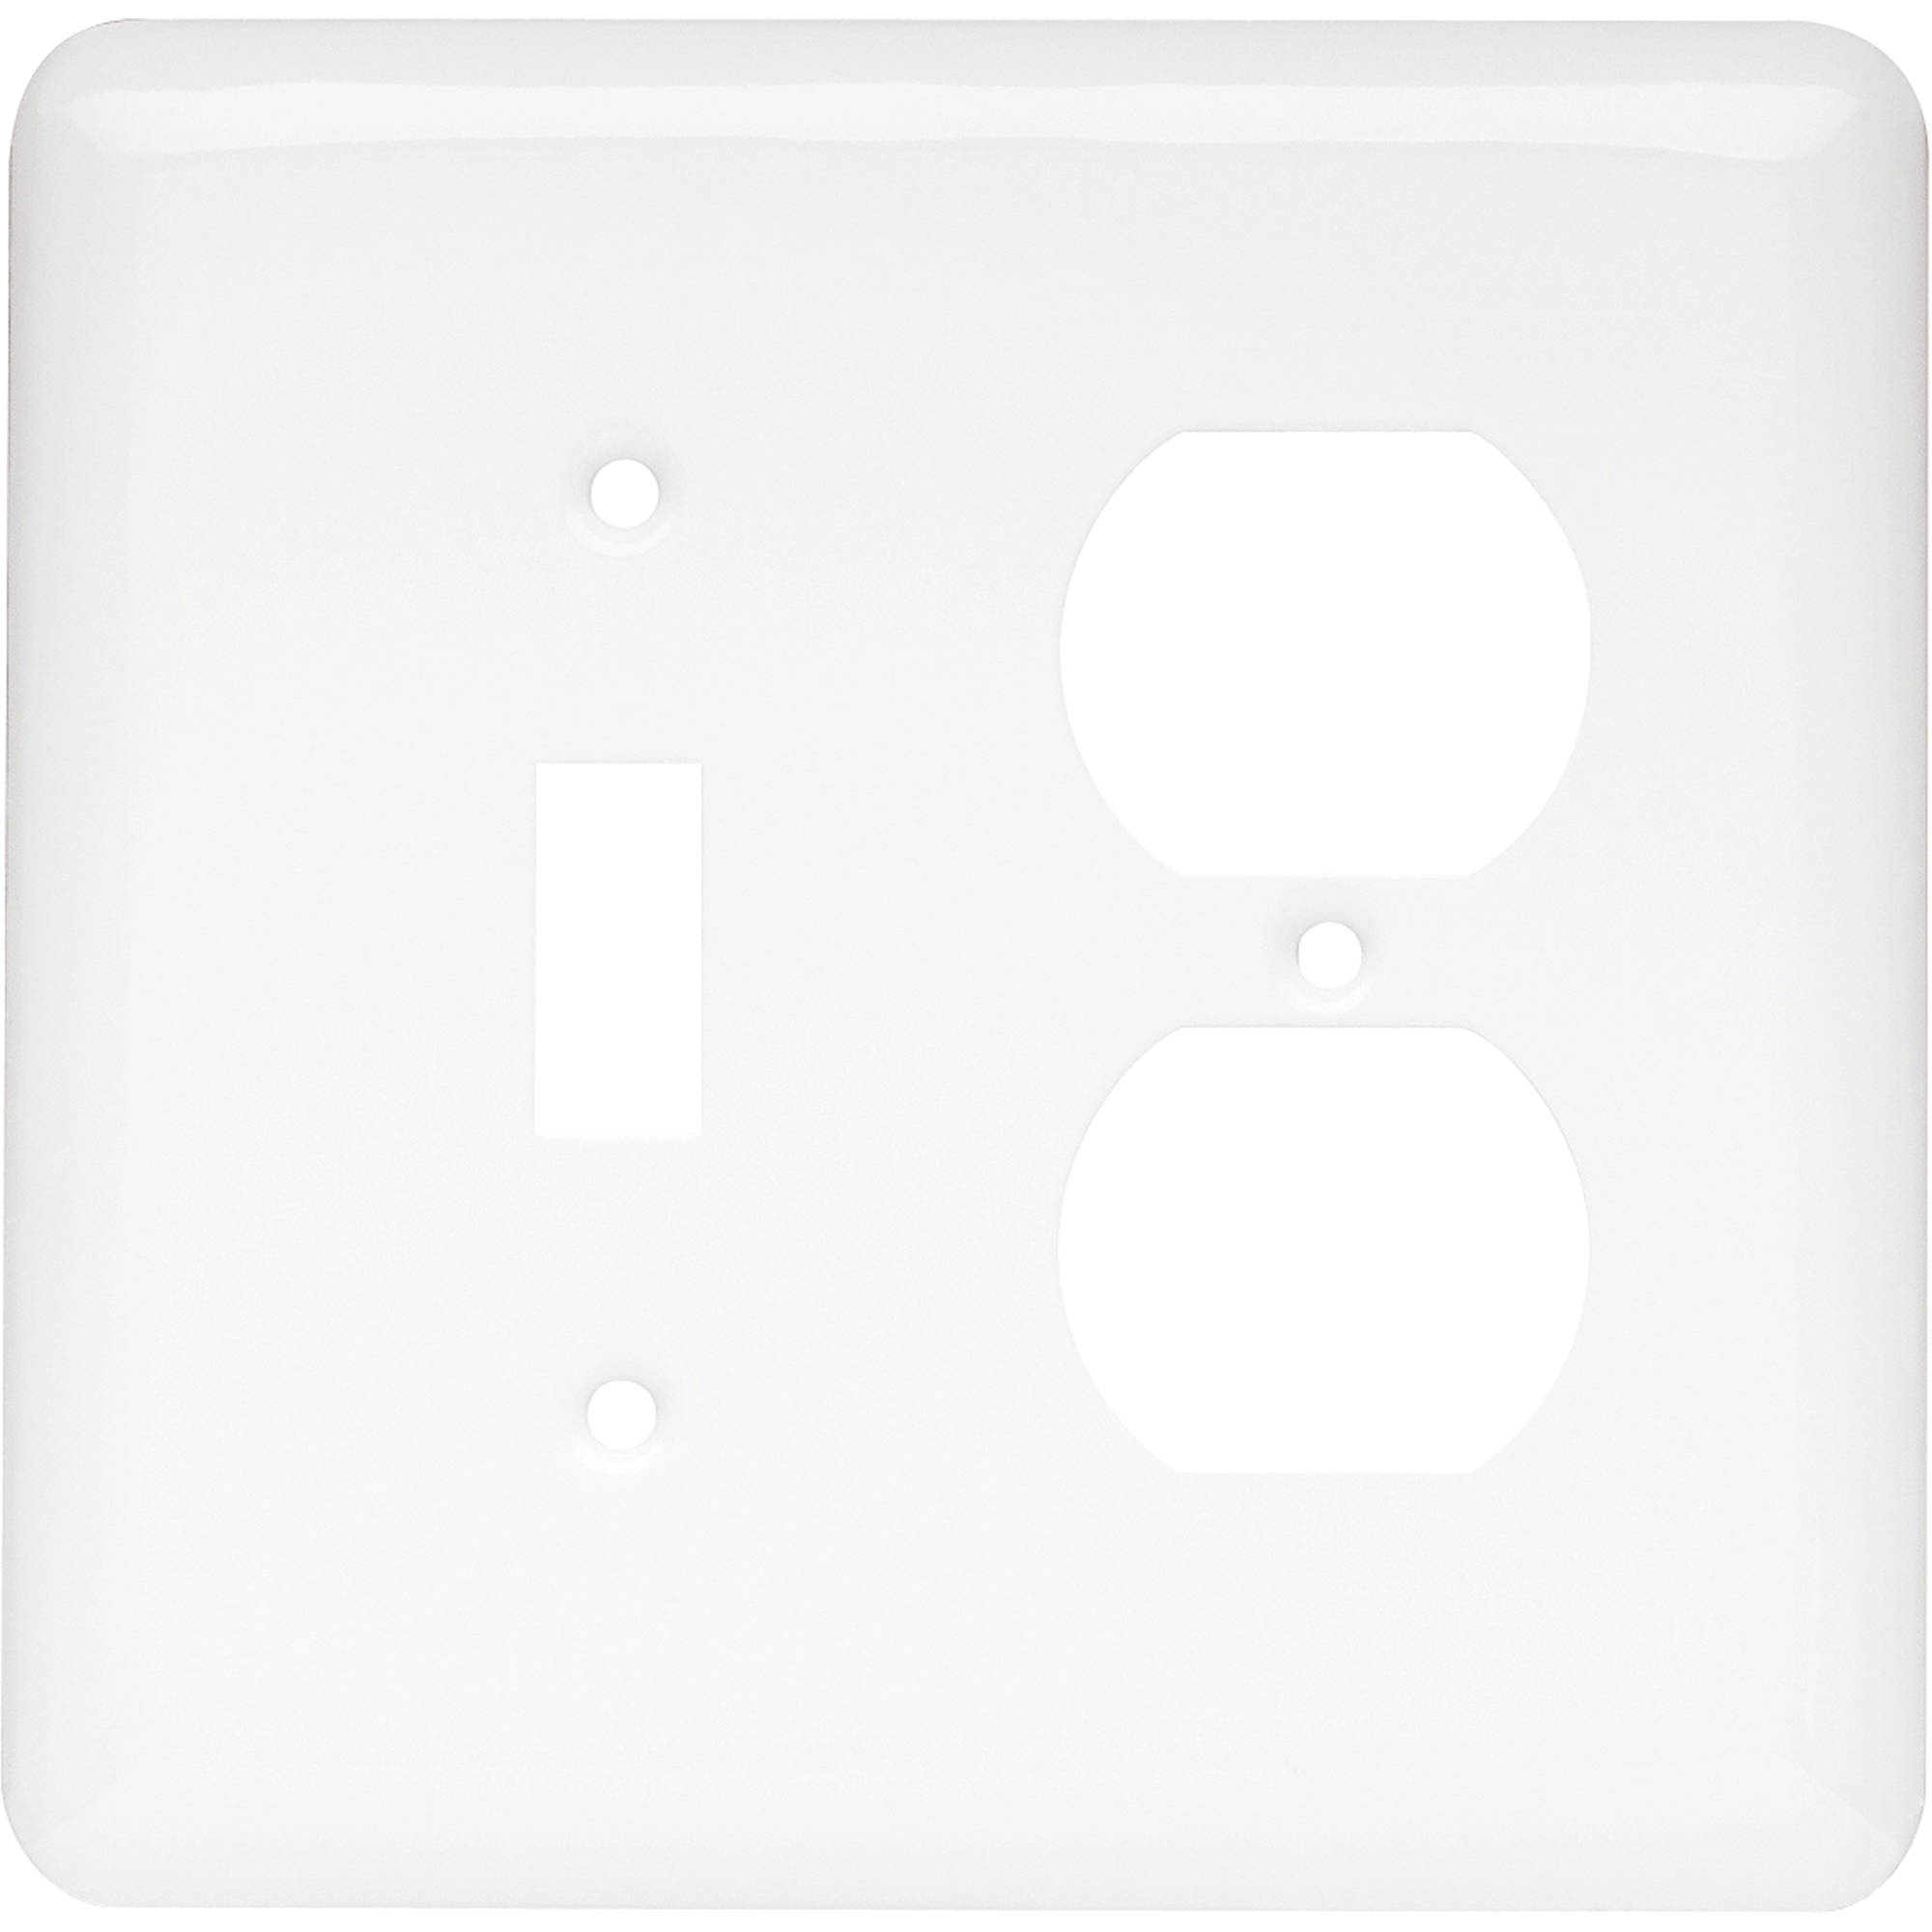 Brainerd Rounded Corner Single Switch/Duplex Wall Plate, Available in Multiple Colors